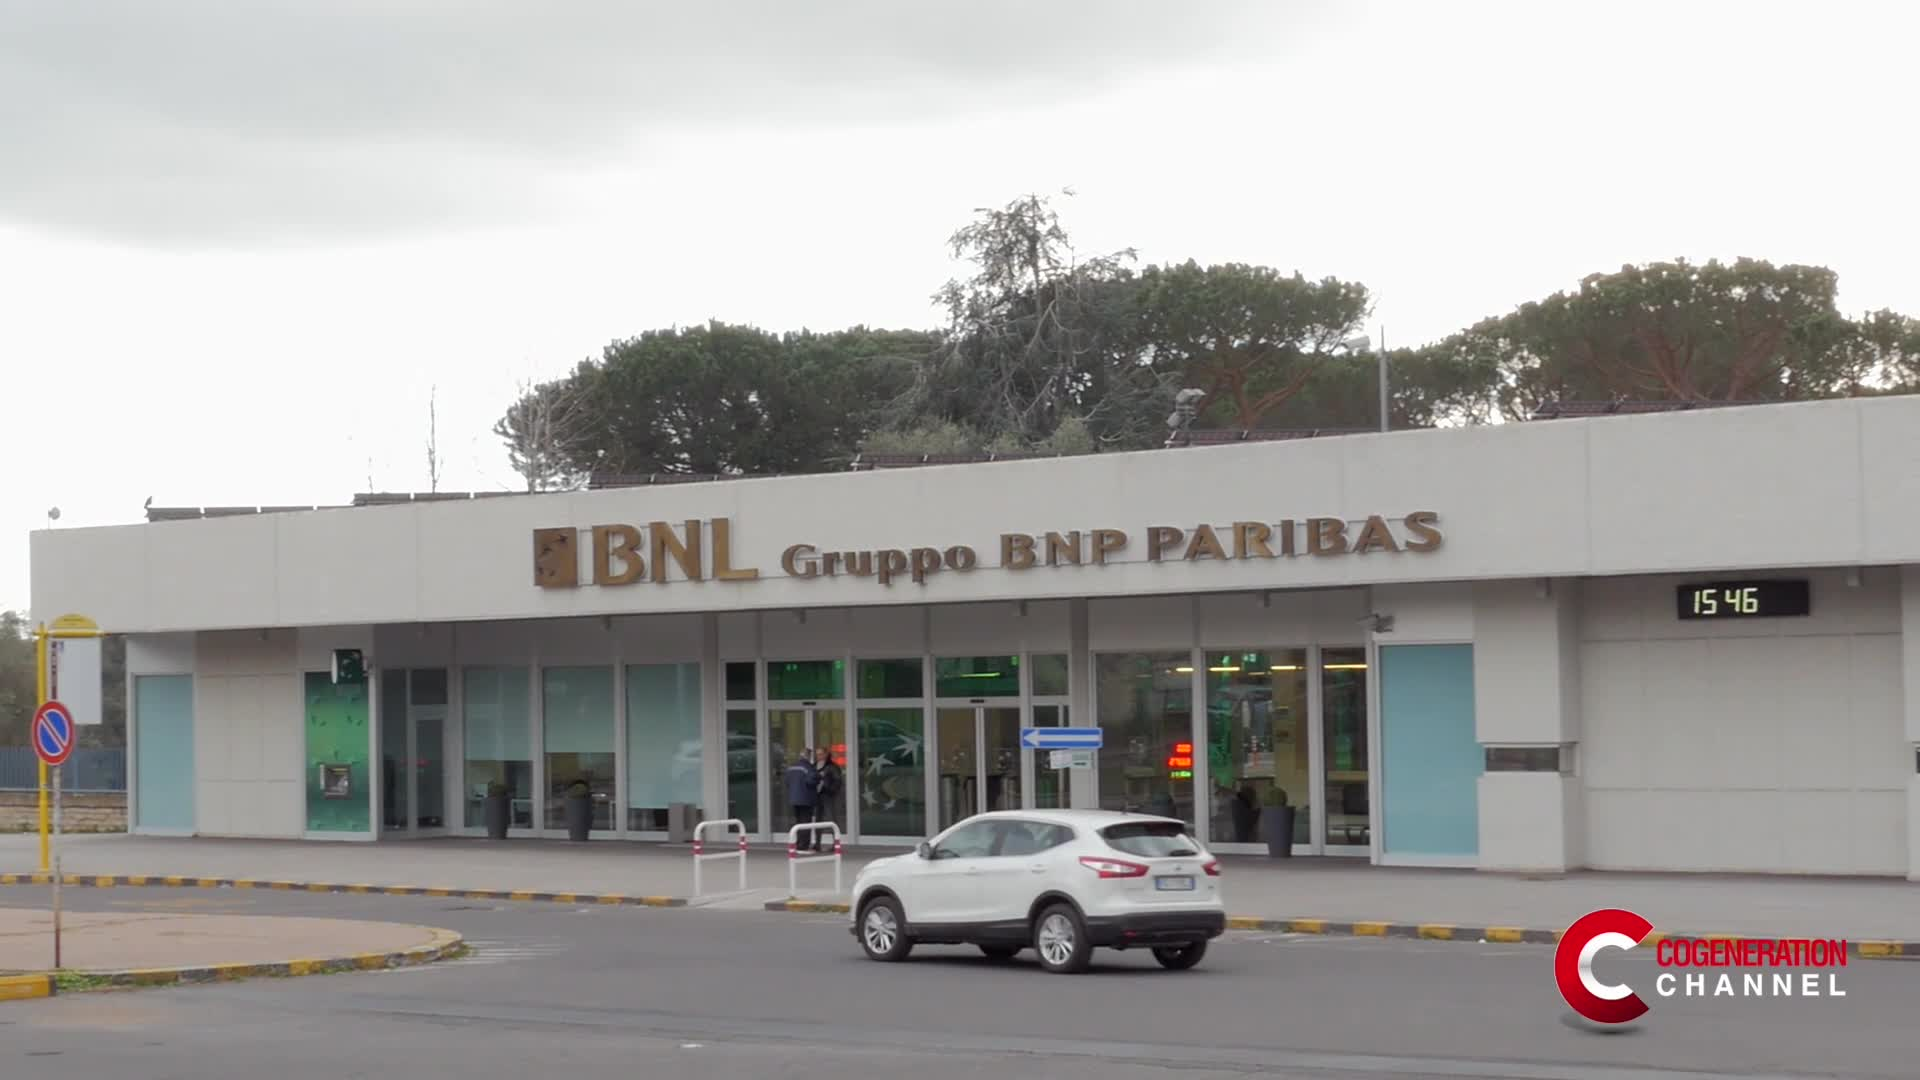 BNL in Rome is backing trigeneration to reduce its energy consumption by 40%